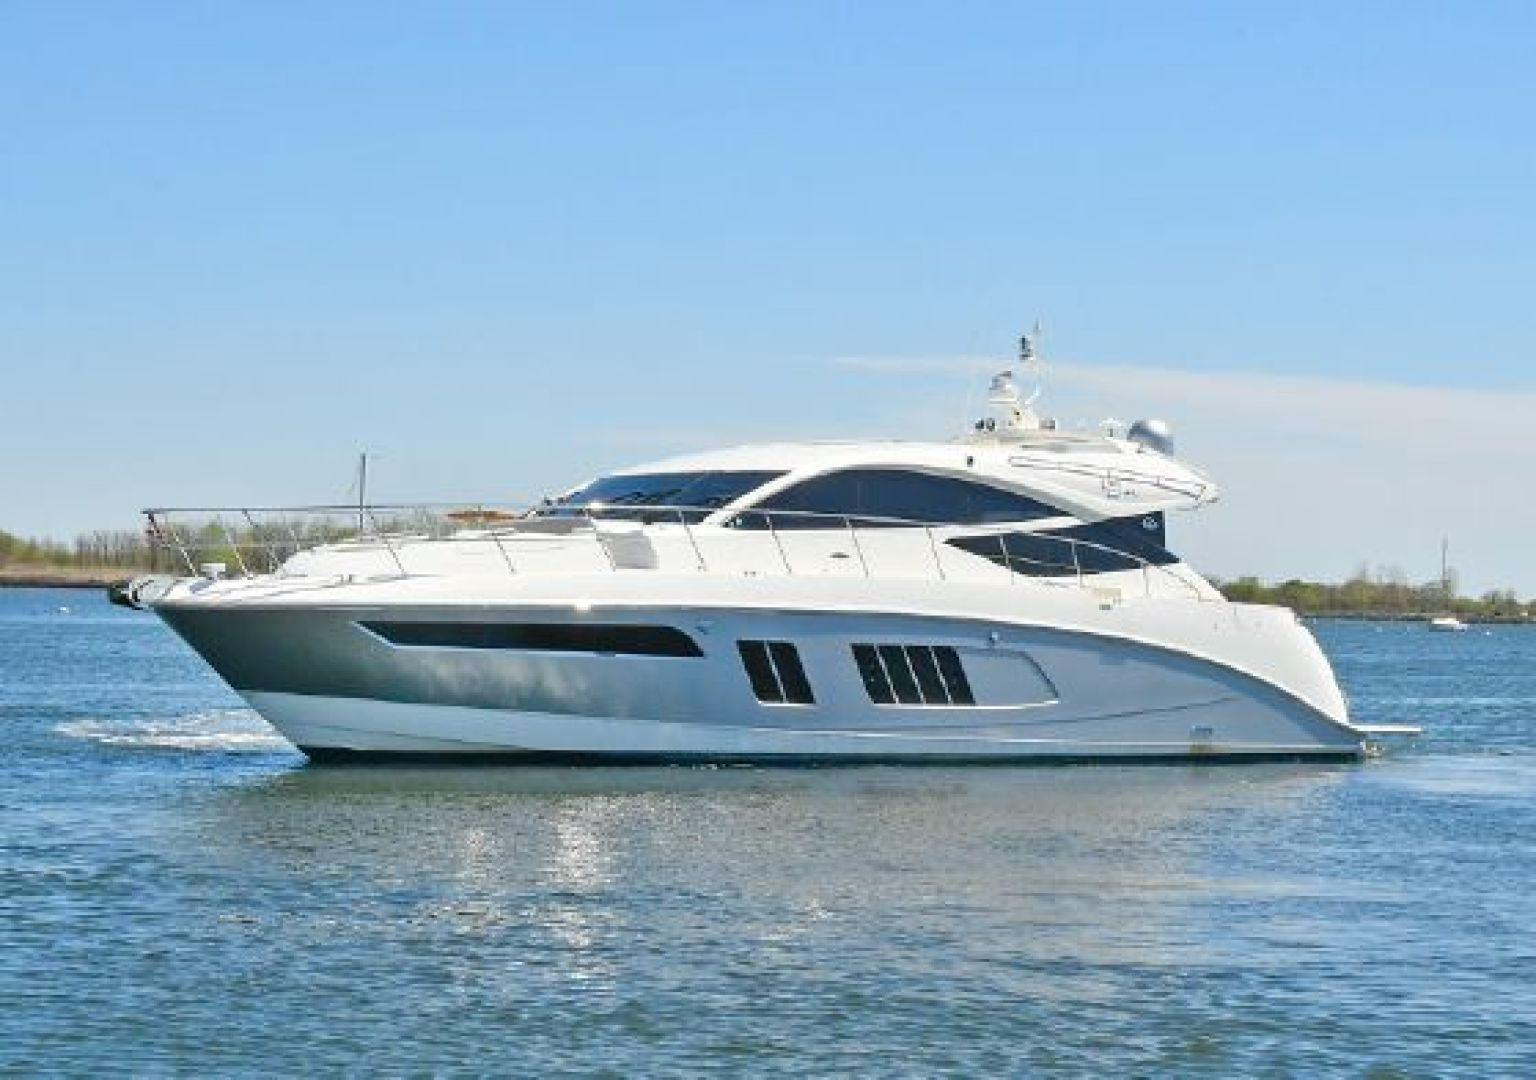 65' Sea Ray 2017 L650 Silver Lining